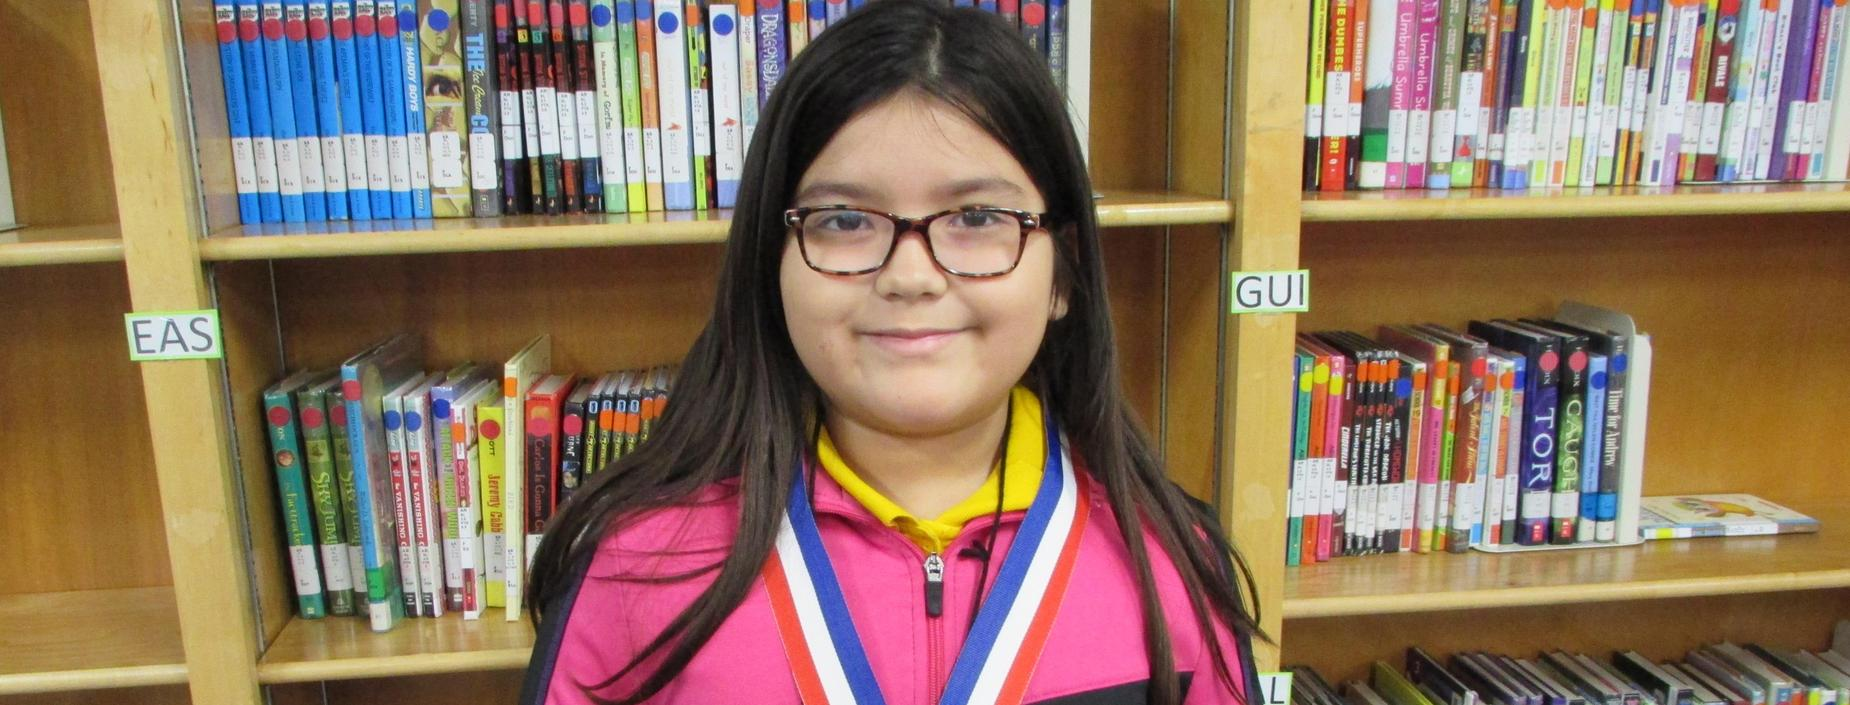 2nd place Spelling Bee